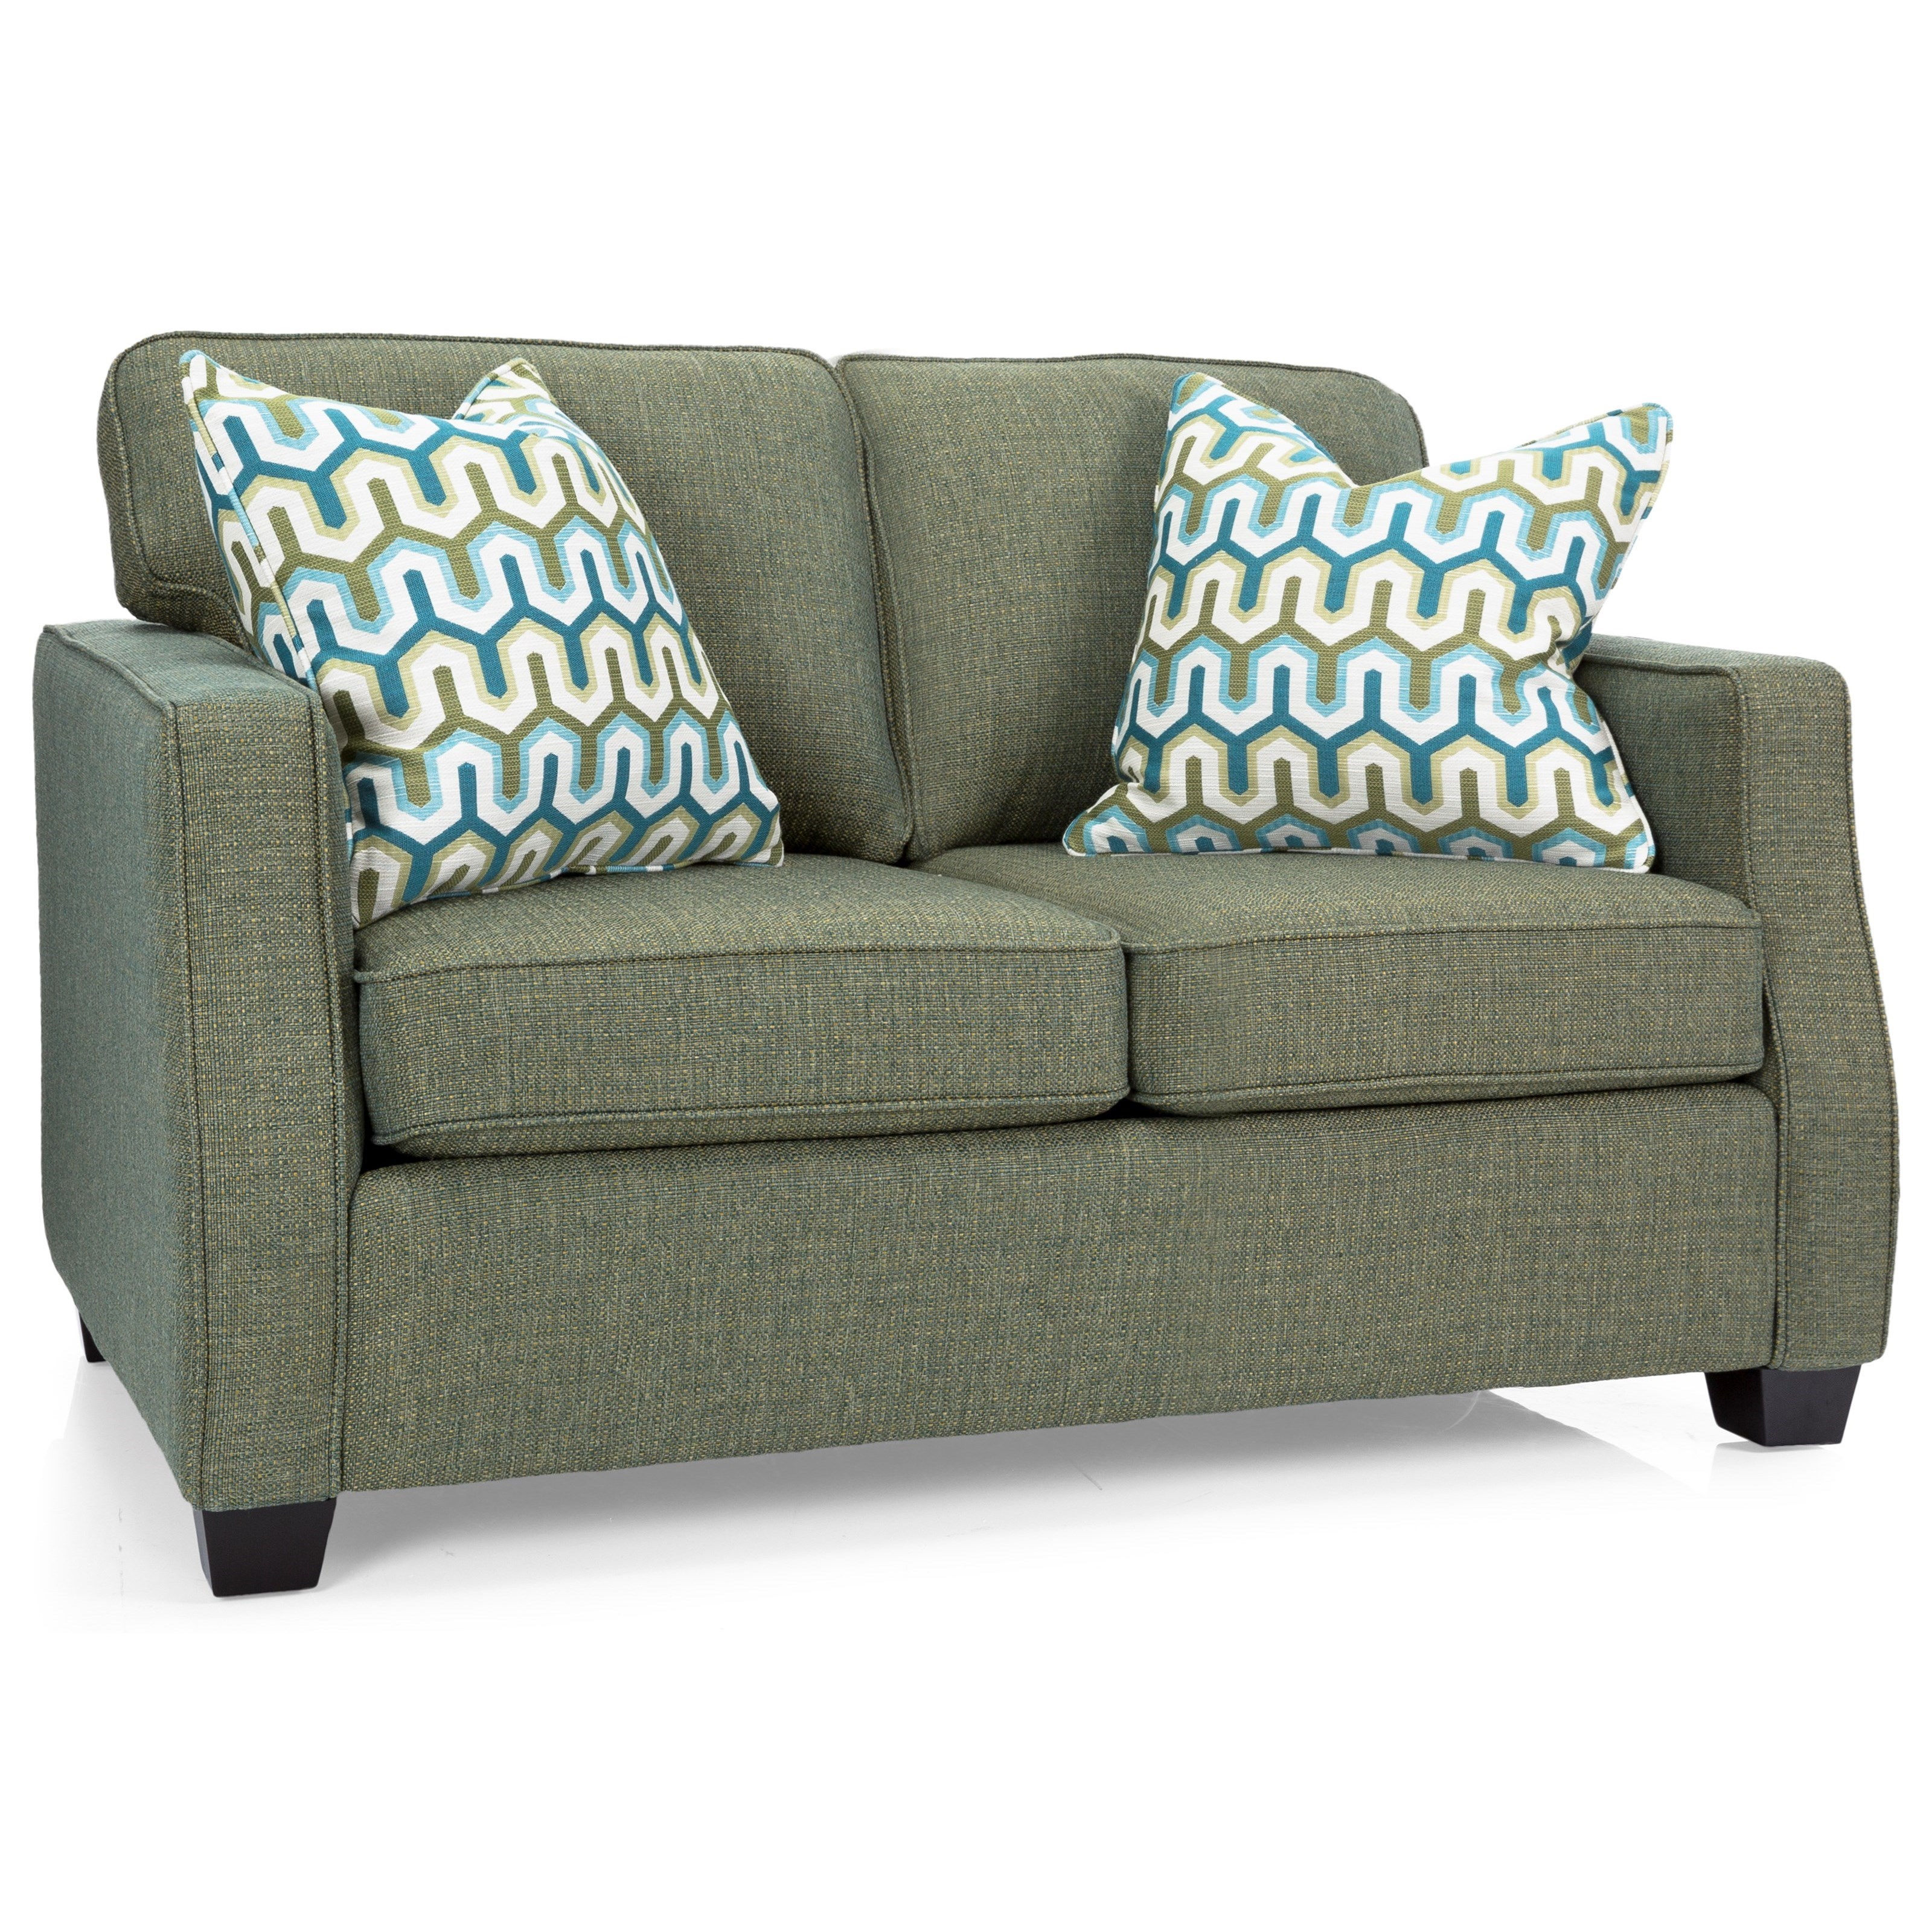 2570 Loveseat by Decor-Rest at Upper Room Home Furnishings